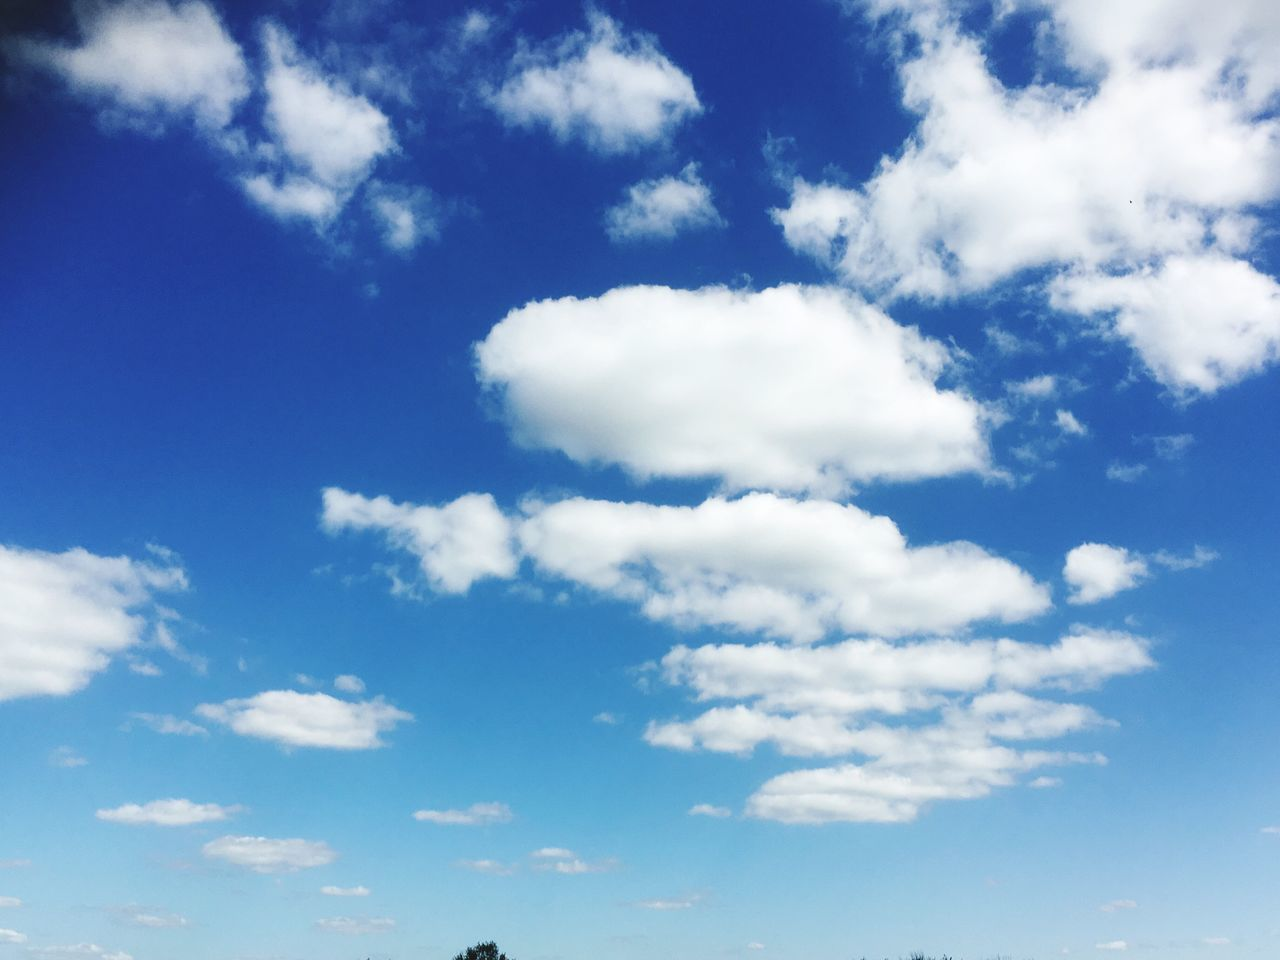 Cumulus Cloud Sky Nature Beauty In Nature Cloud - Sky Blue Backgrounds Low Angle View White Color Full Frame Sky Only Scenics Softness Tranquility No People Day Outdoors